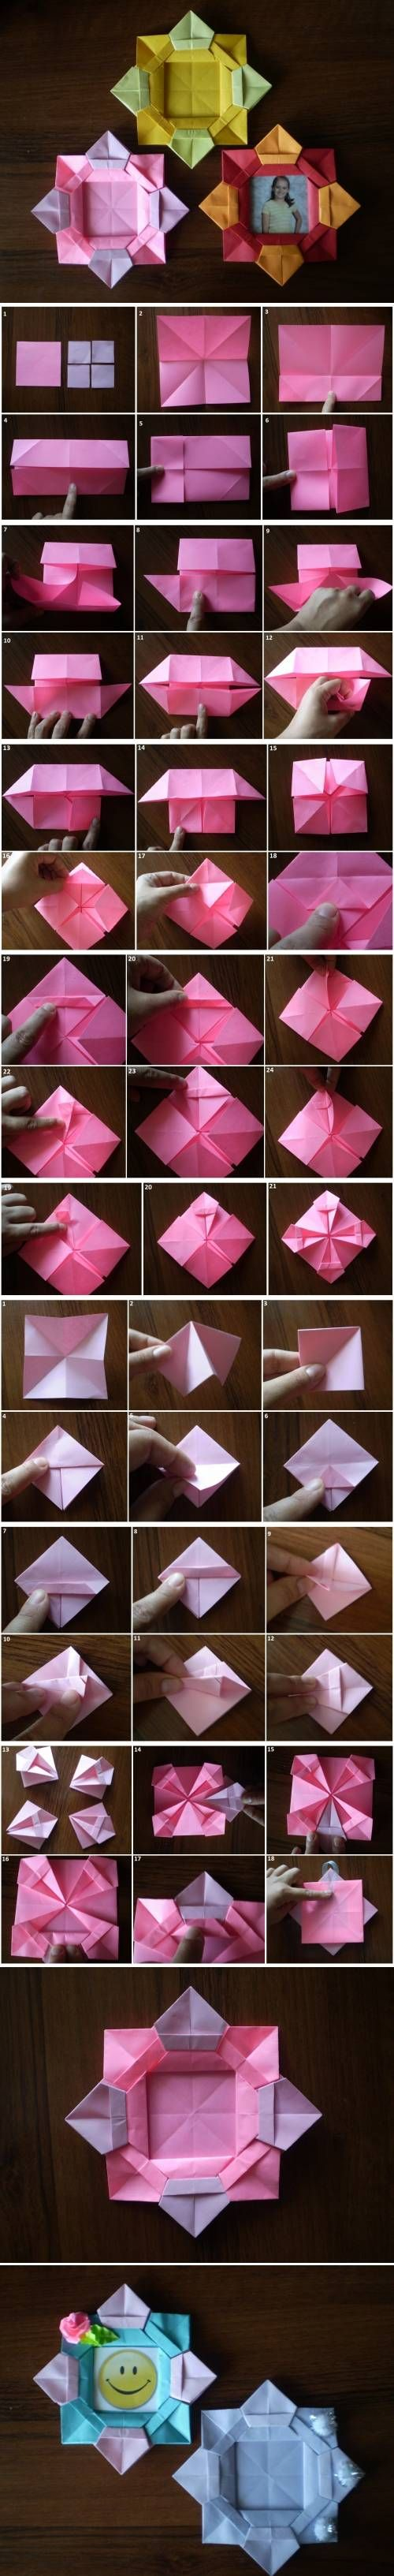 How to make origami flower picture frame step by step diy for Flower making ideas step by step